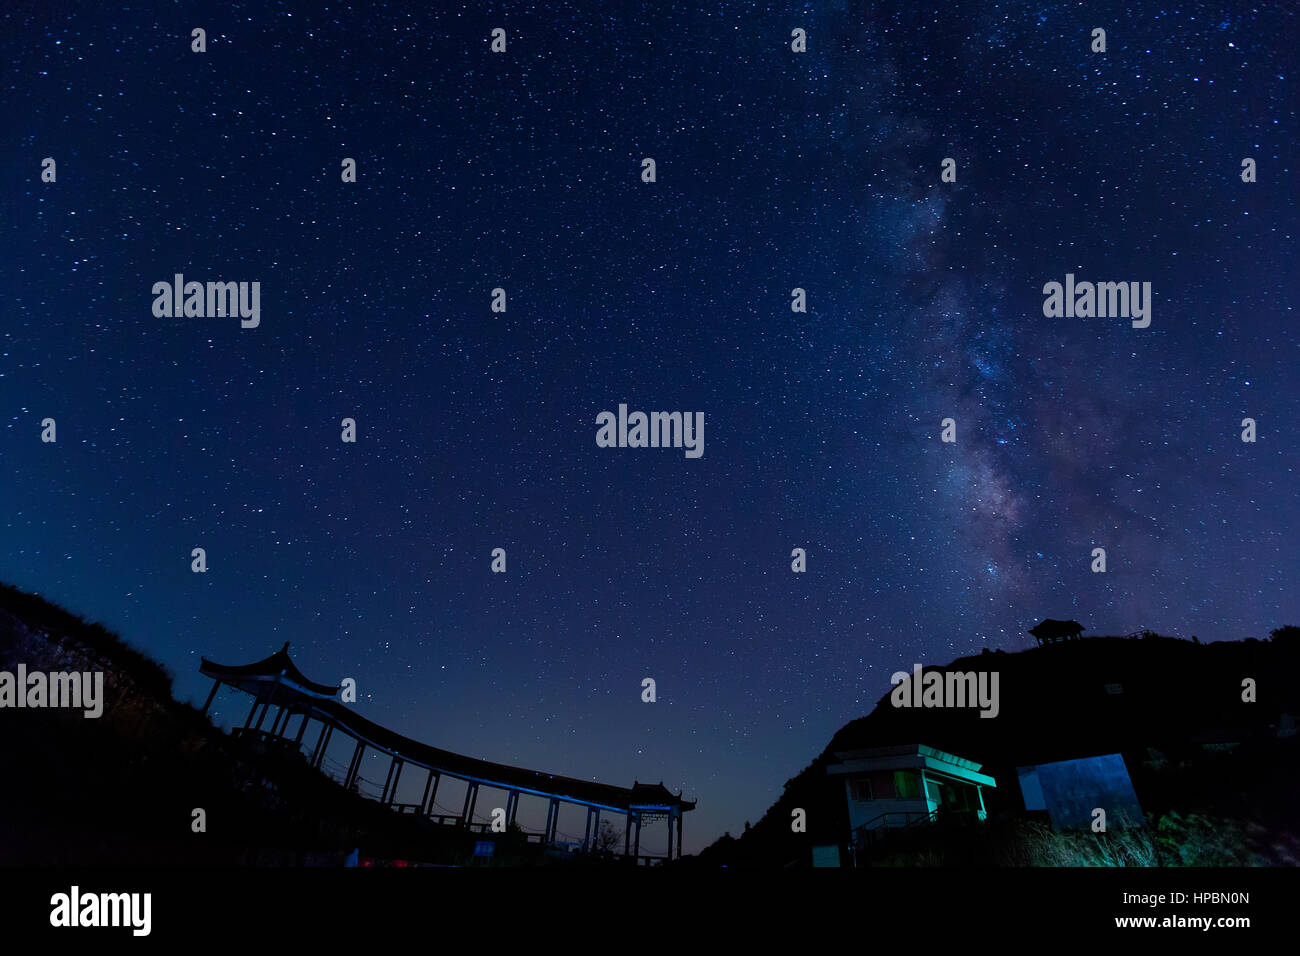 Milky Way over the mountain - Stock Image